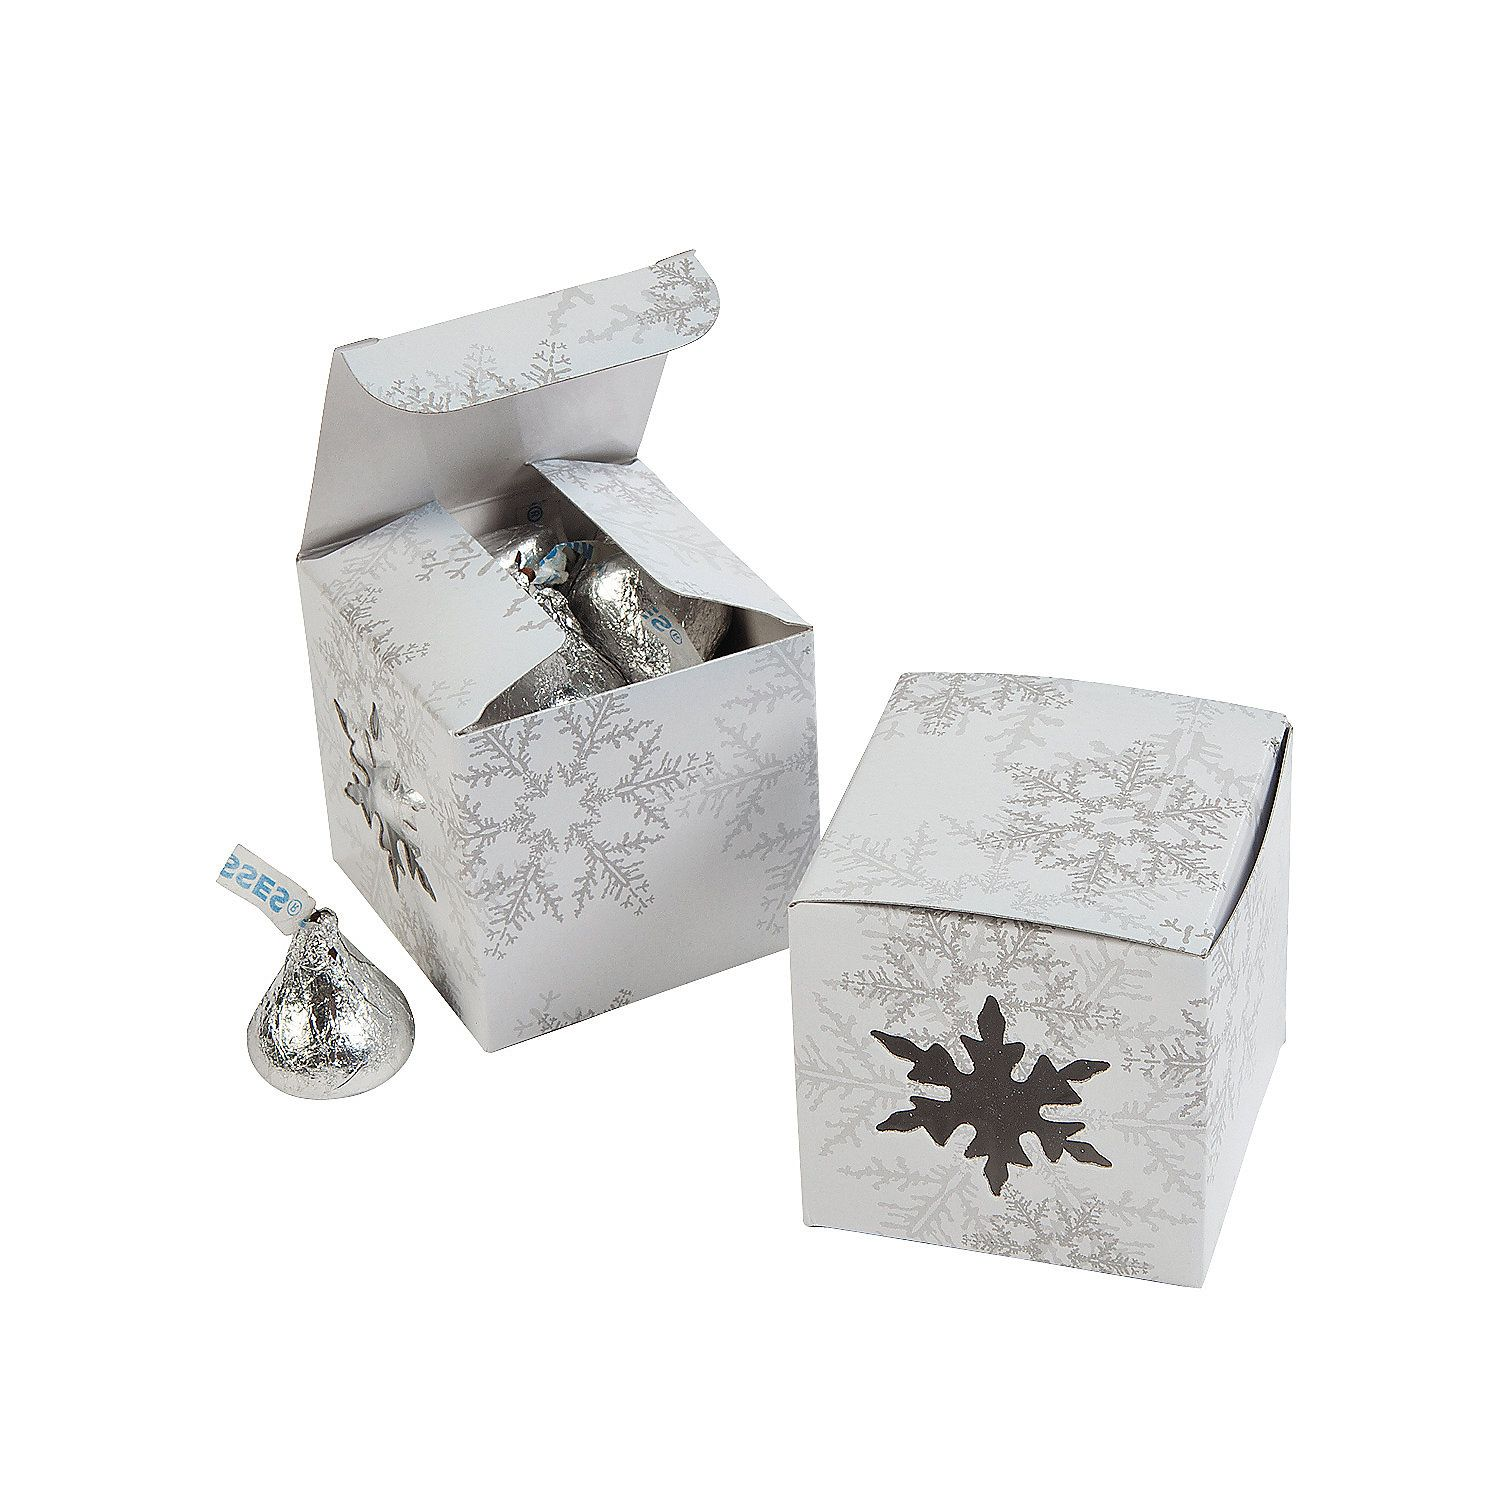 Die Cut Snowflake Gift Boxes | Box, Gift and Favours